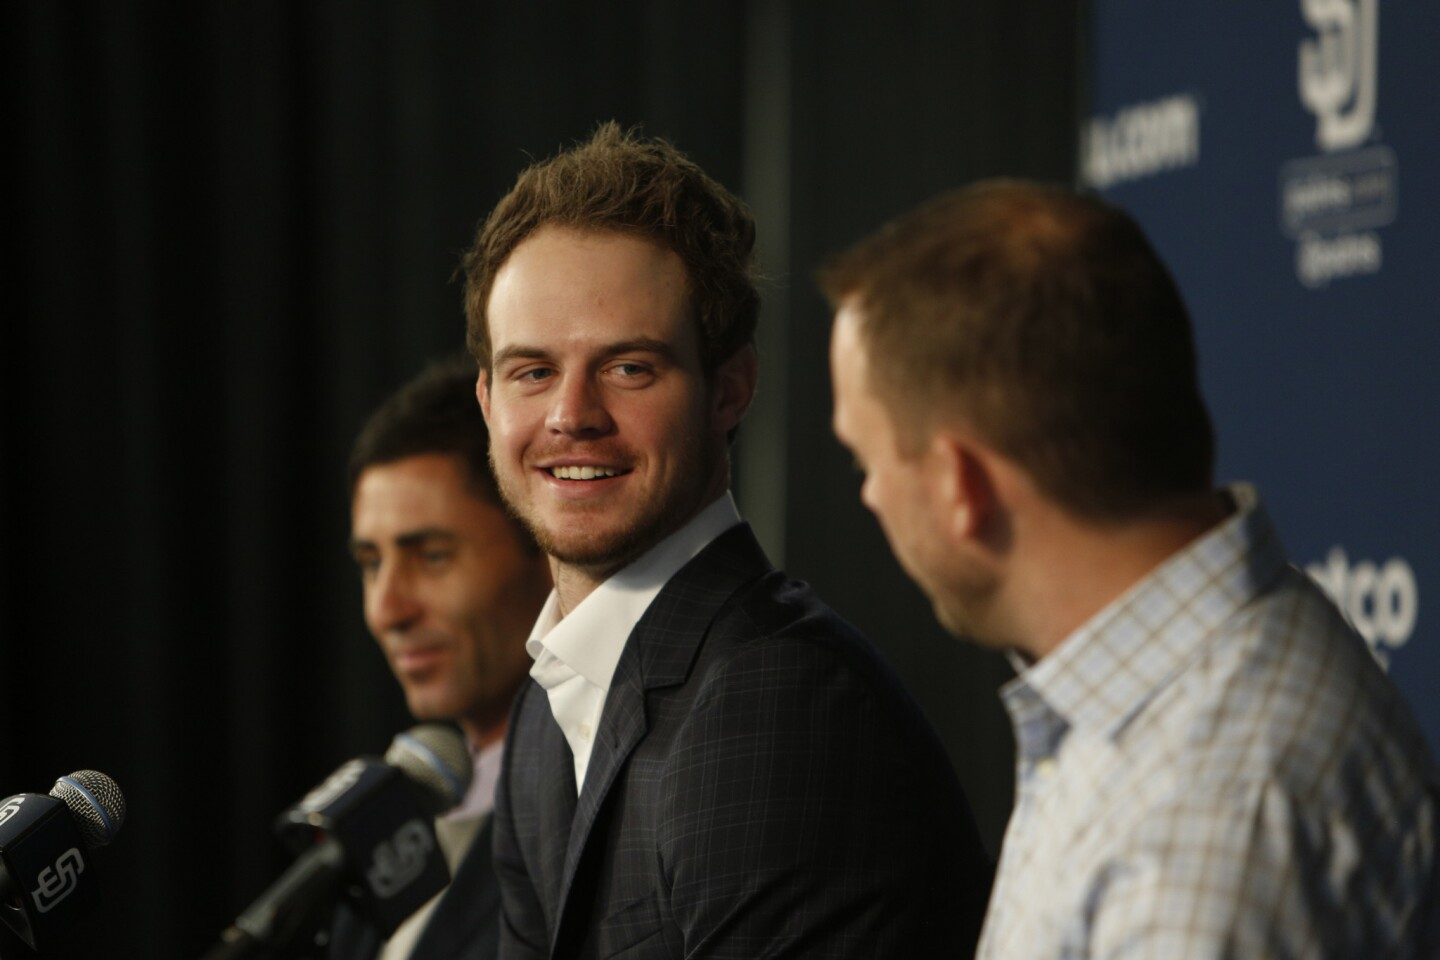 Flanked by team general manager A.J Preller, left, and manager Andy Green, right, Padres infielder Will Myers, center, was all smiles during a press conference to officially announce his six year, 83million dollar contract extension.